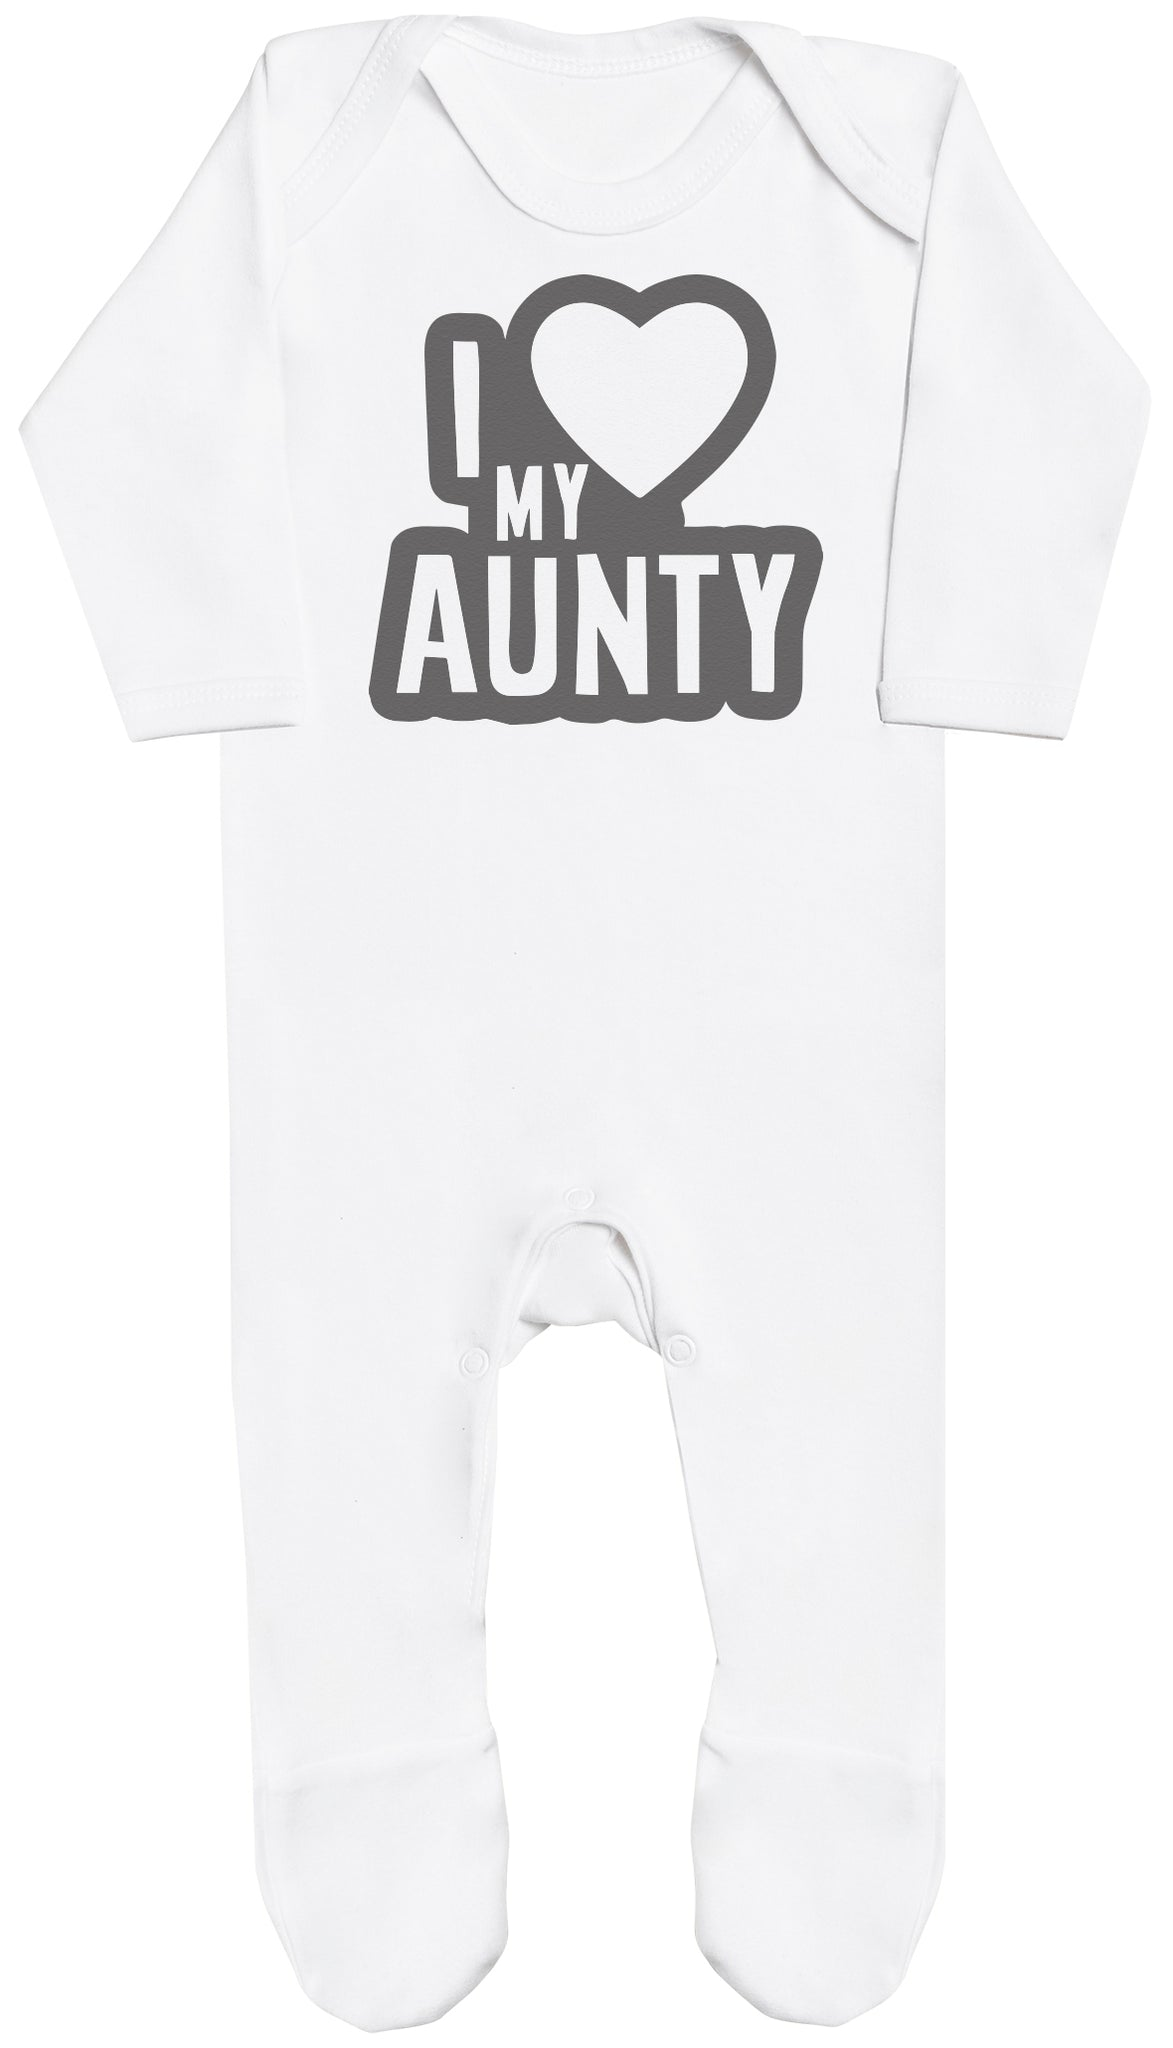 I Love My Aunty Black Outline Baby Romper